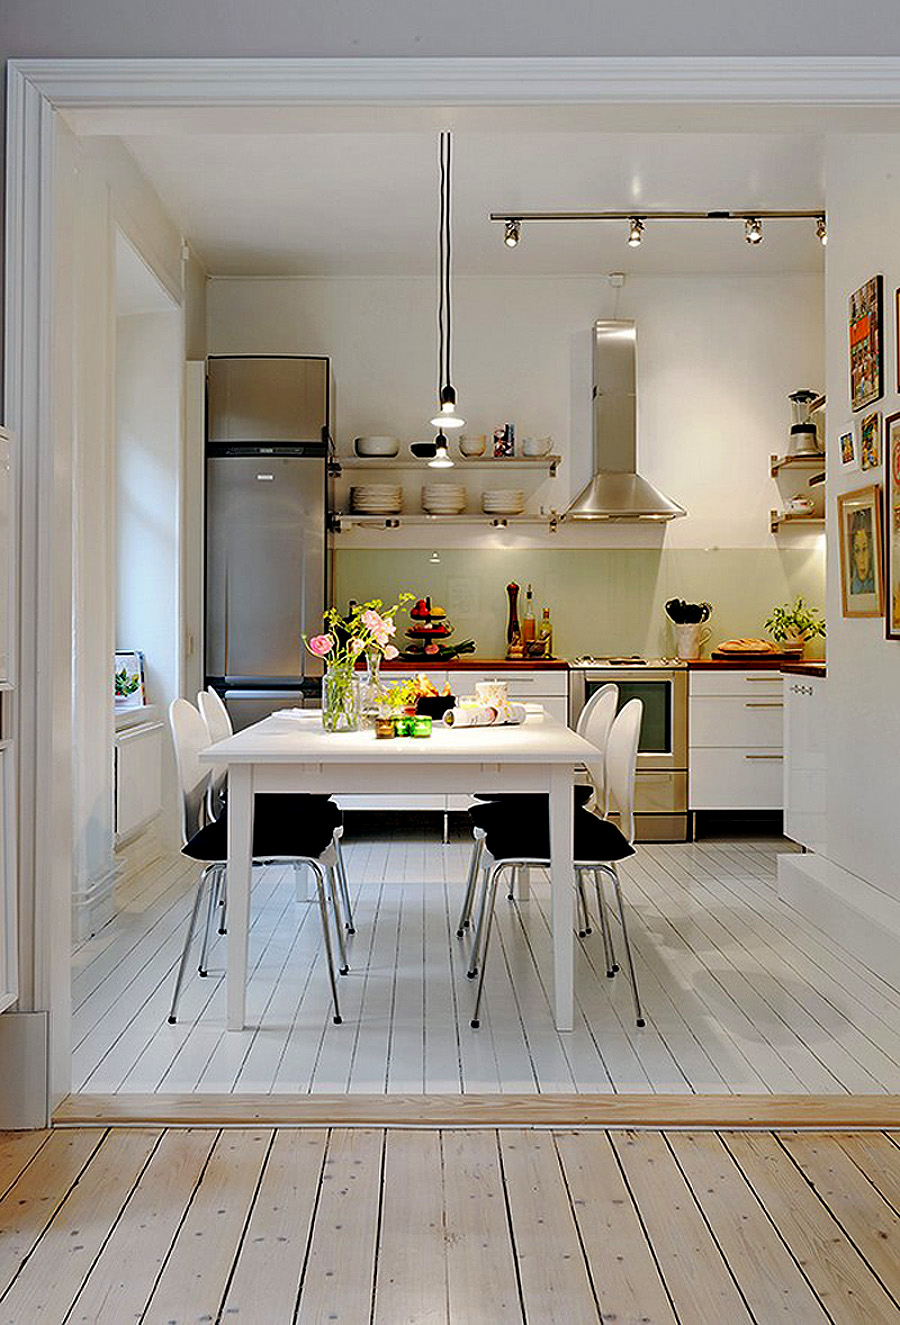 Small Kitchen Tips for Making More Space | Small Room ...